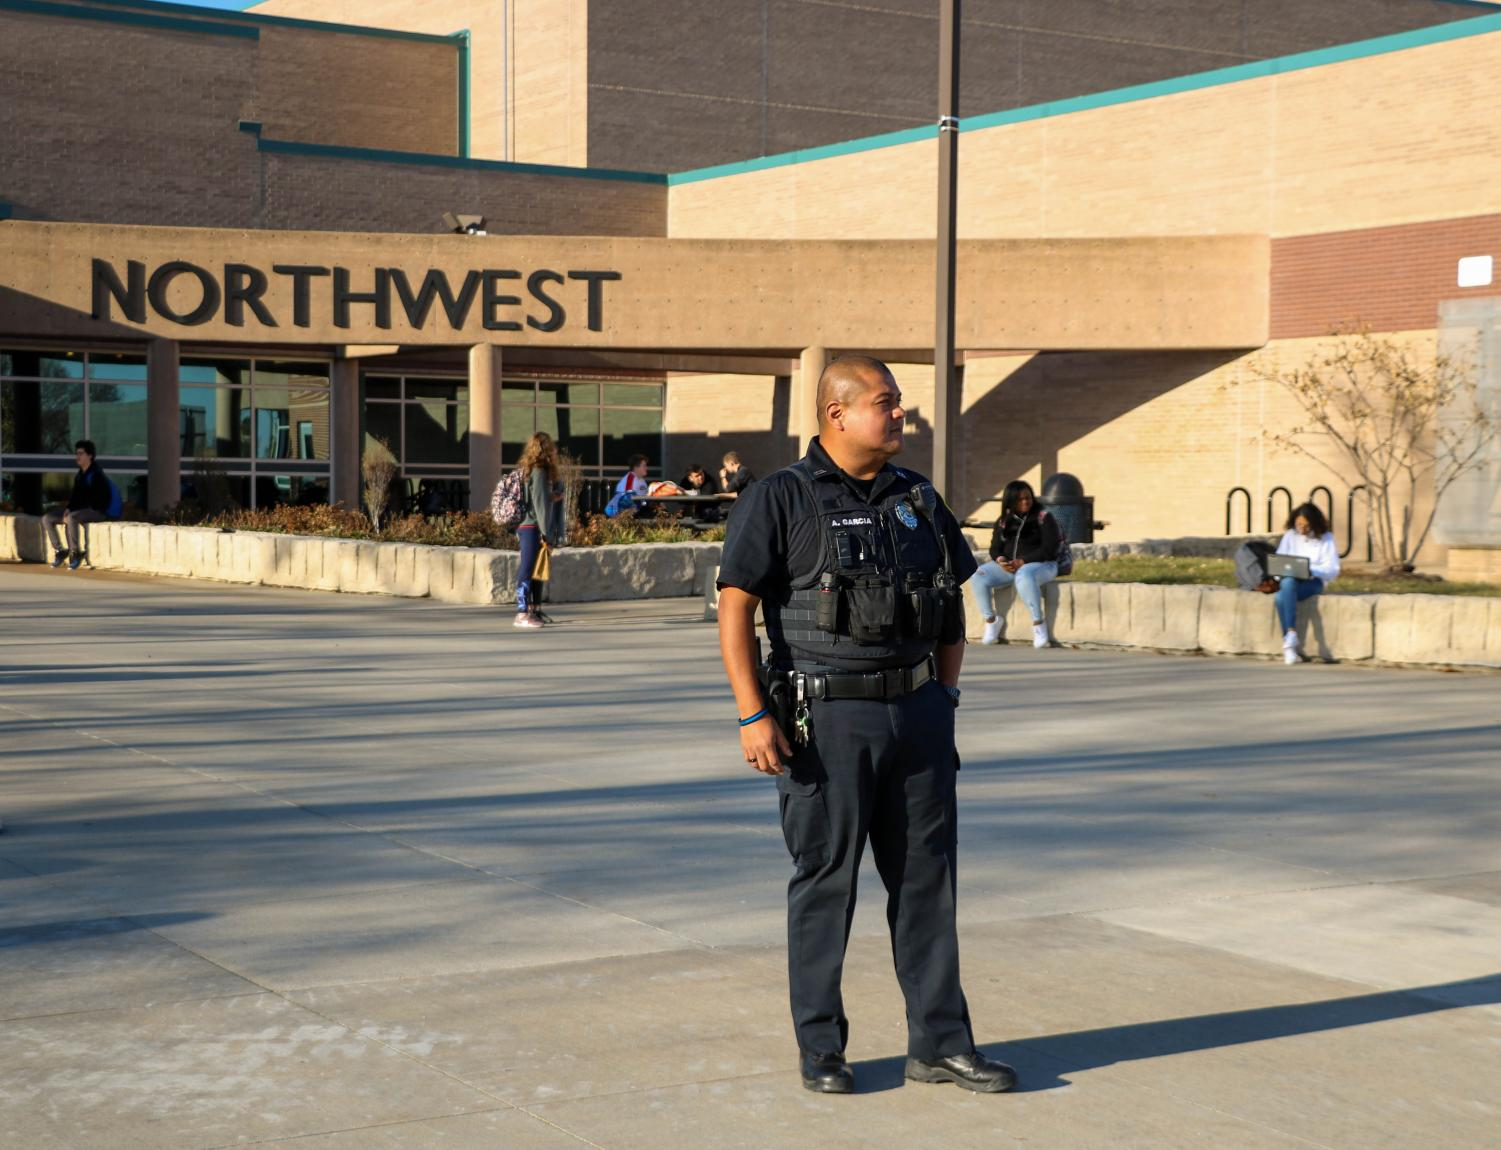 BVNW SRO Anthony Garcia stands outside the main entrance for dismissal Monday. There was an increased police protection at BVNW in reaction to a threat against the school.